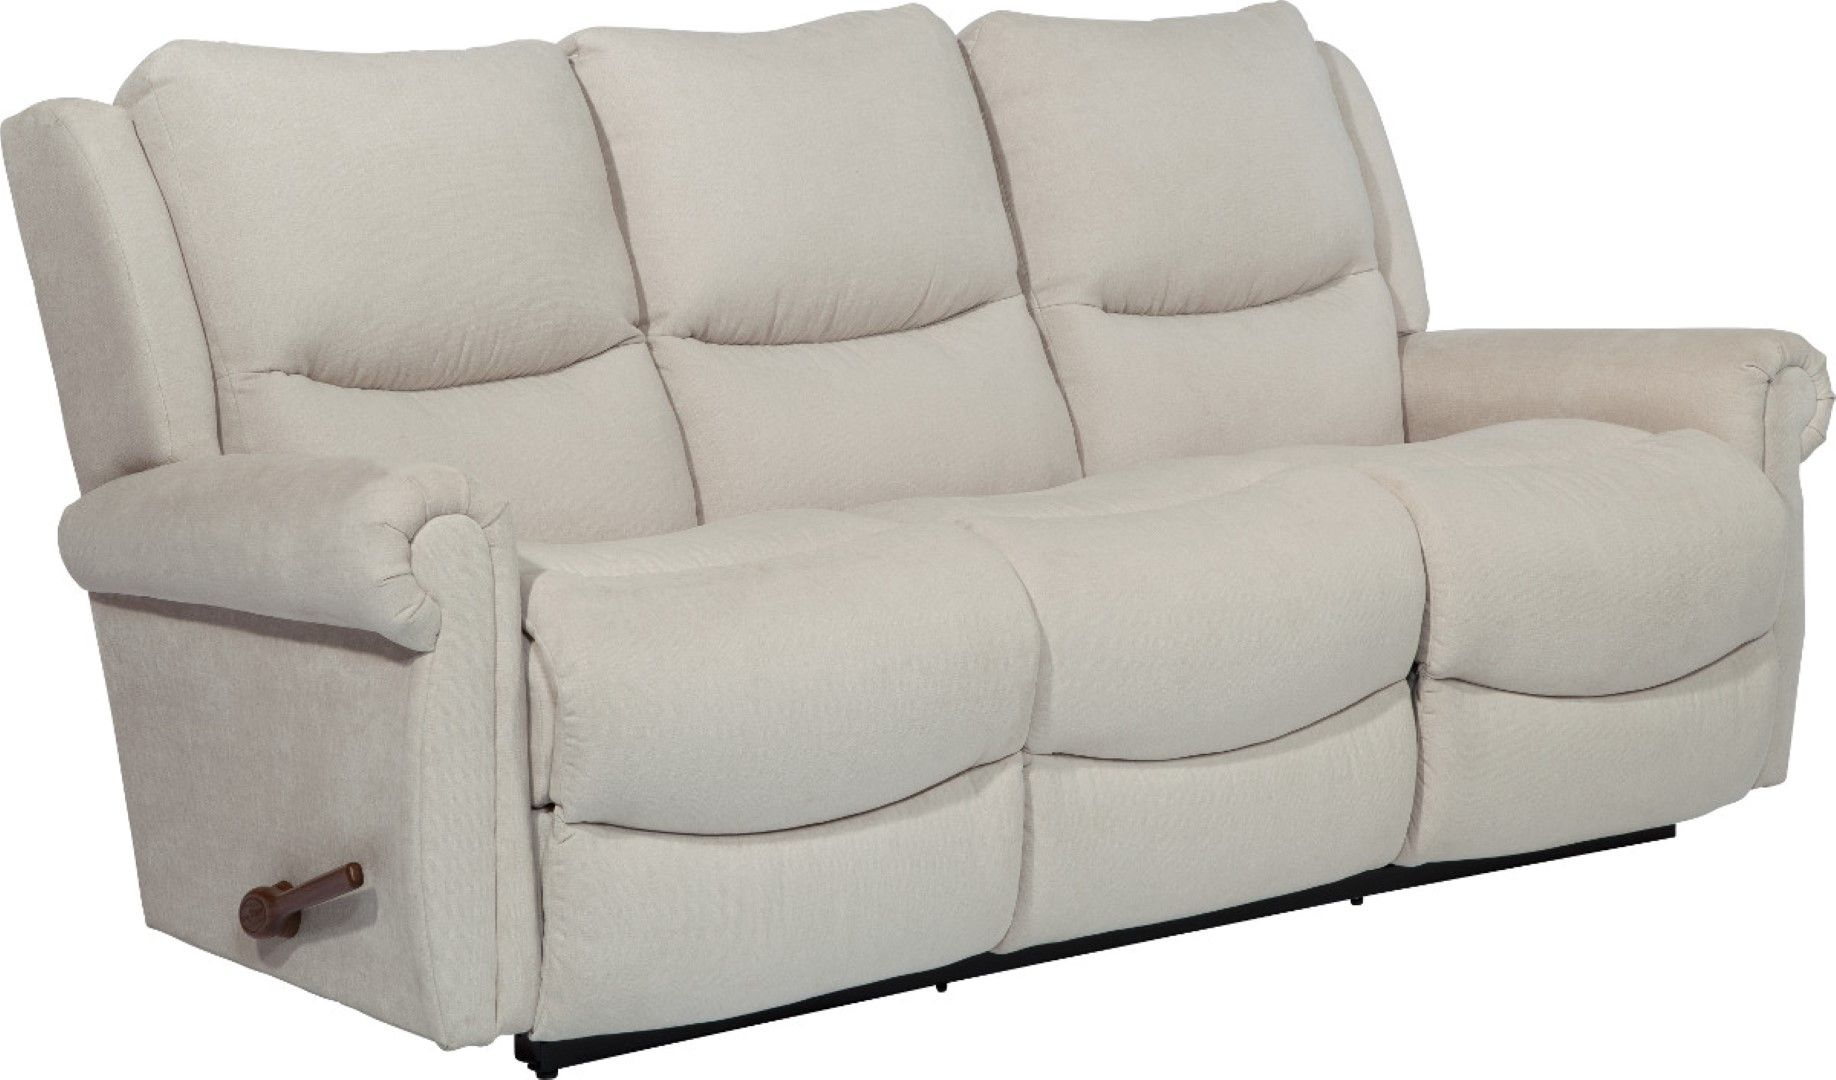 Furniture Lazyboy Sofas With The Handle To Adjust The Comfortable Position  For Sitting On The Bottom